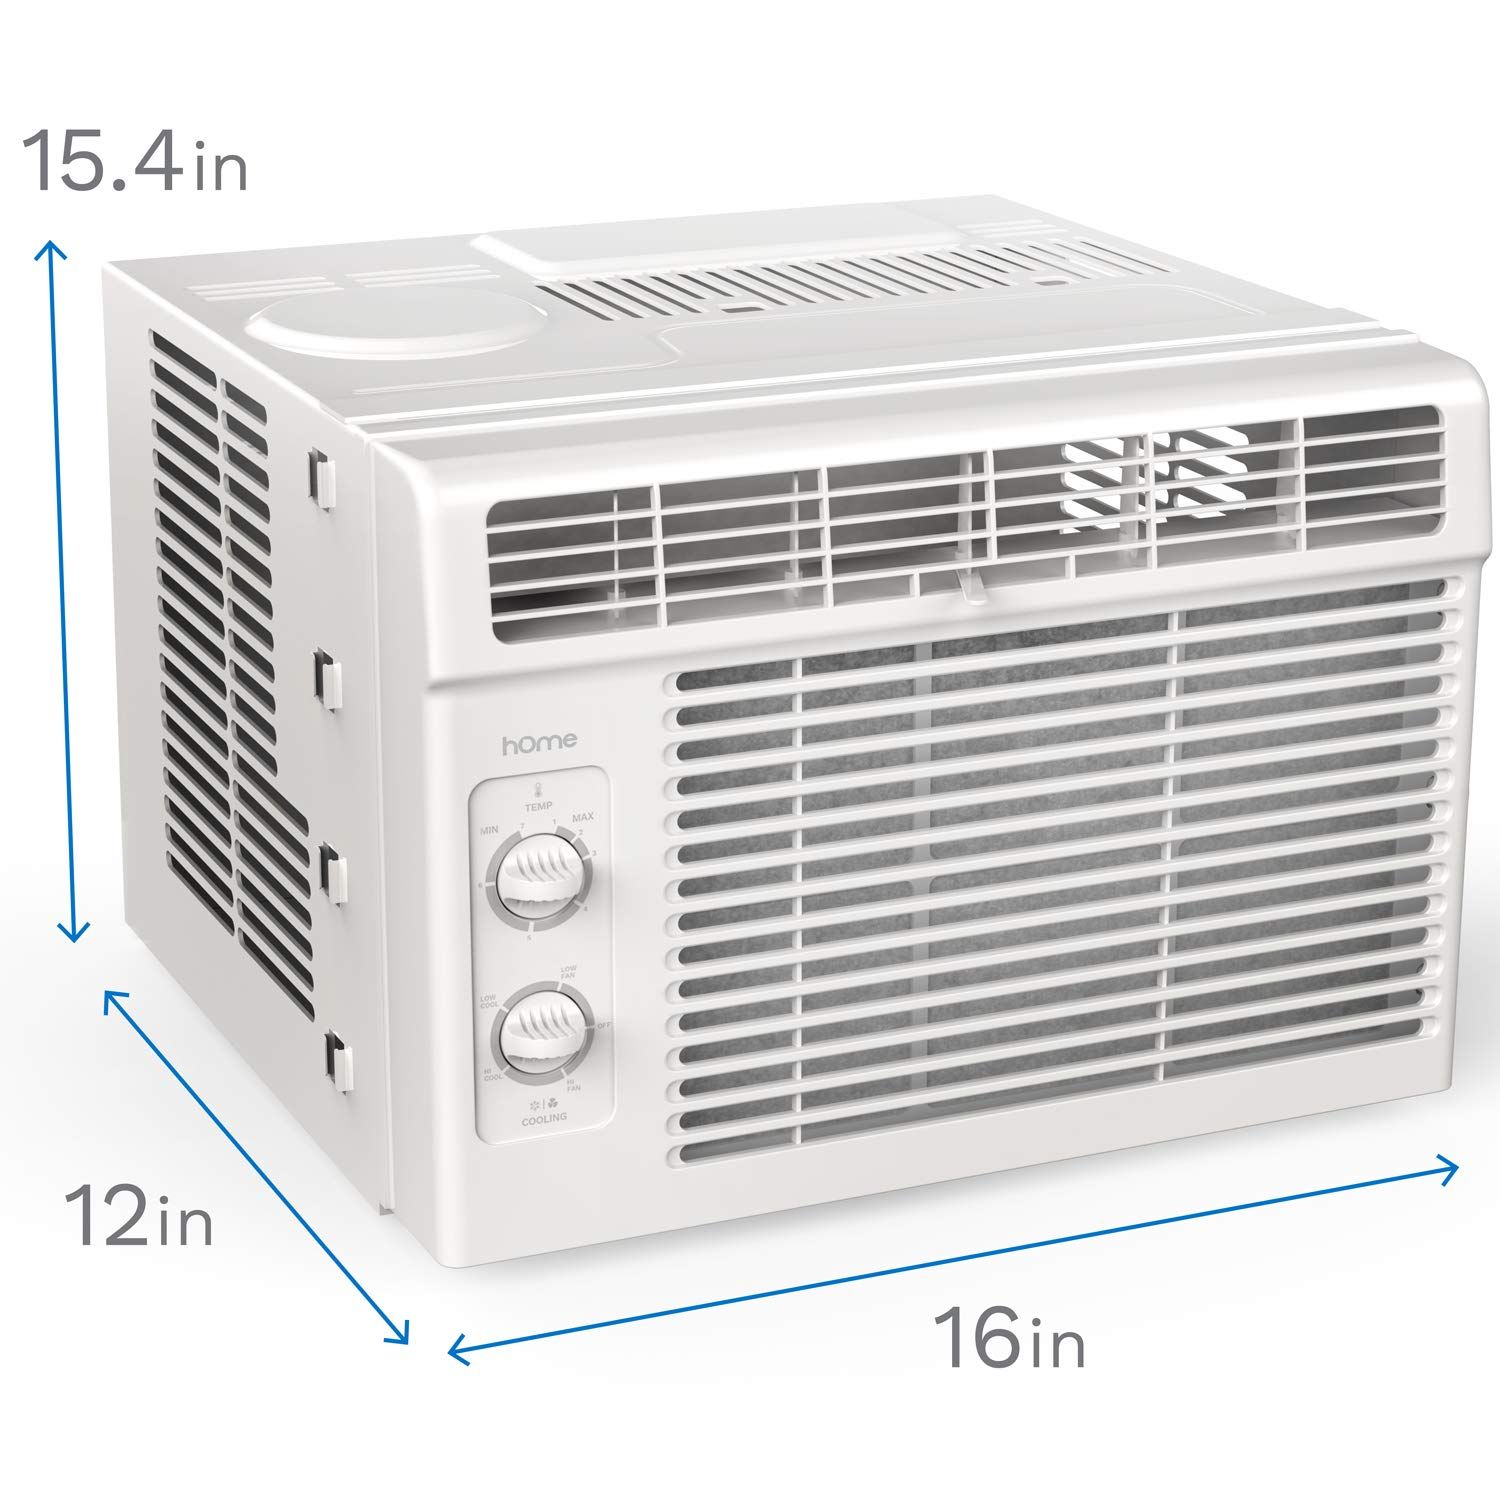 Airconditioner With New Upgradation Best Configuration And Best